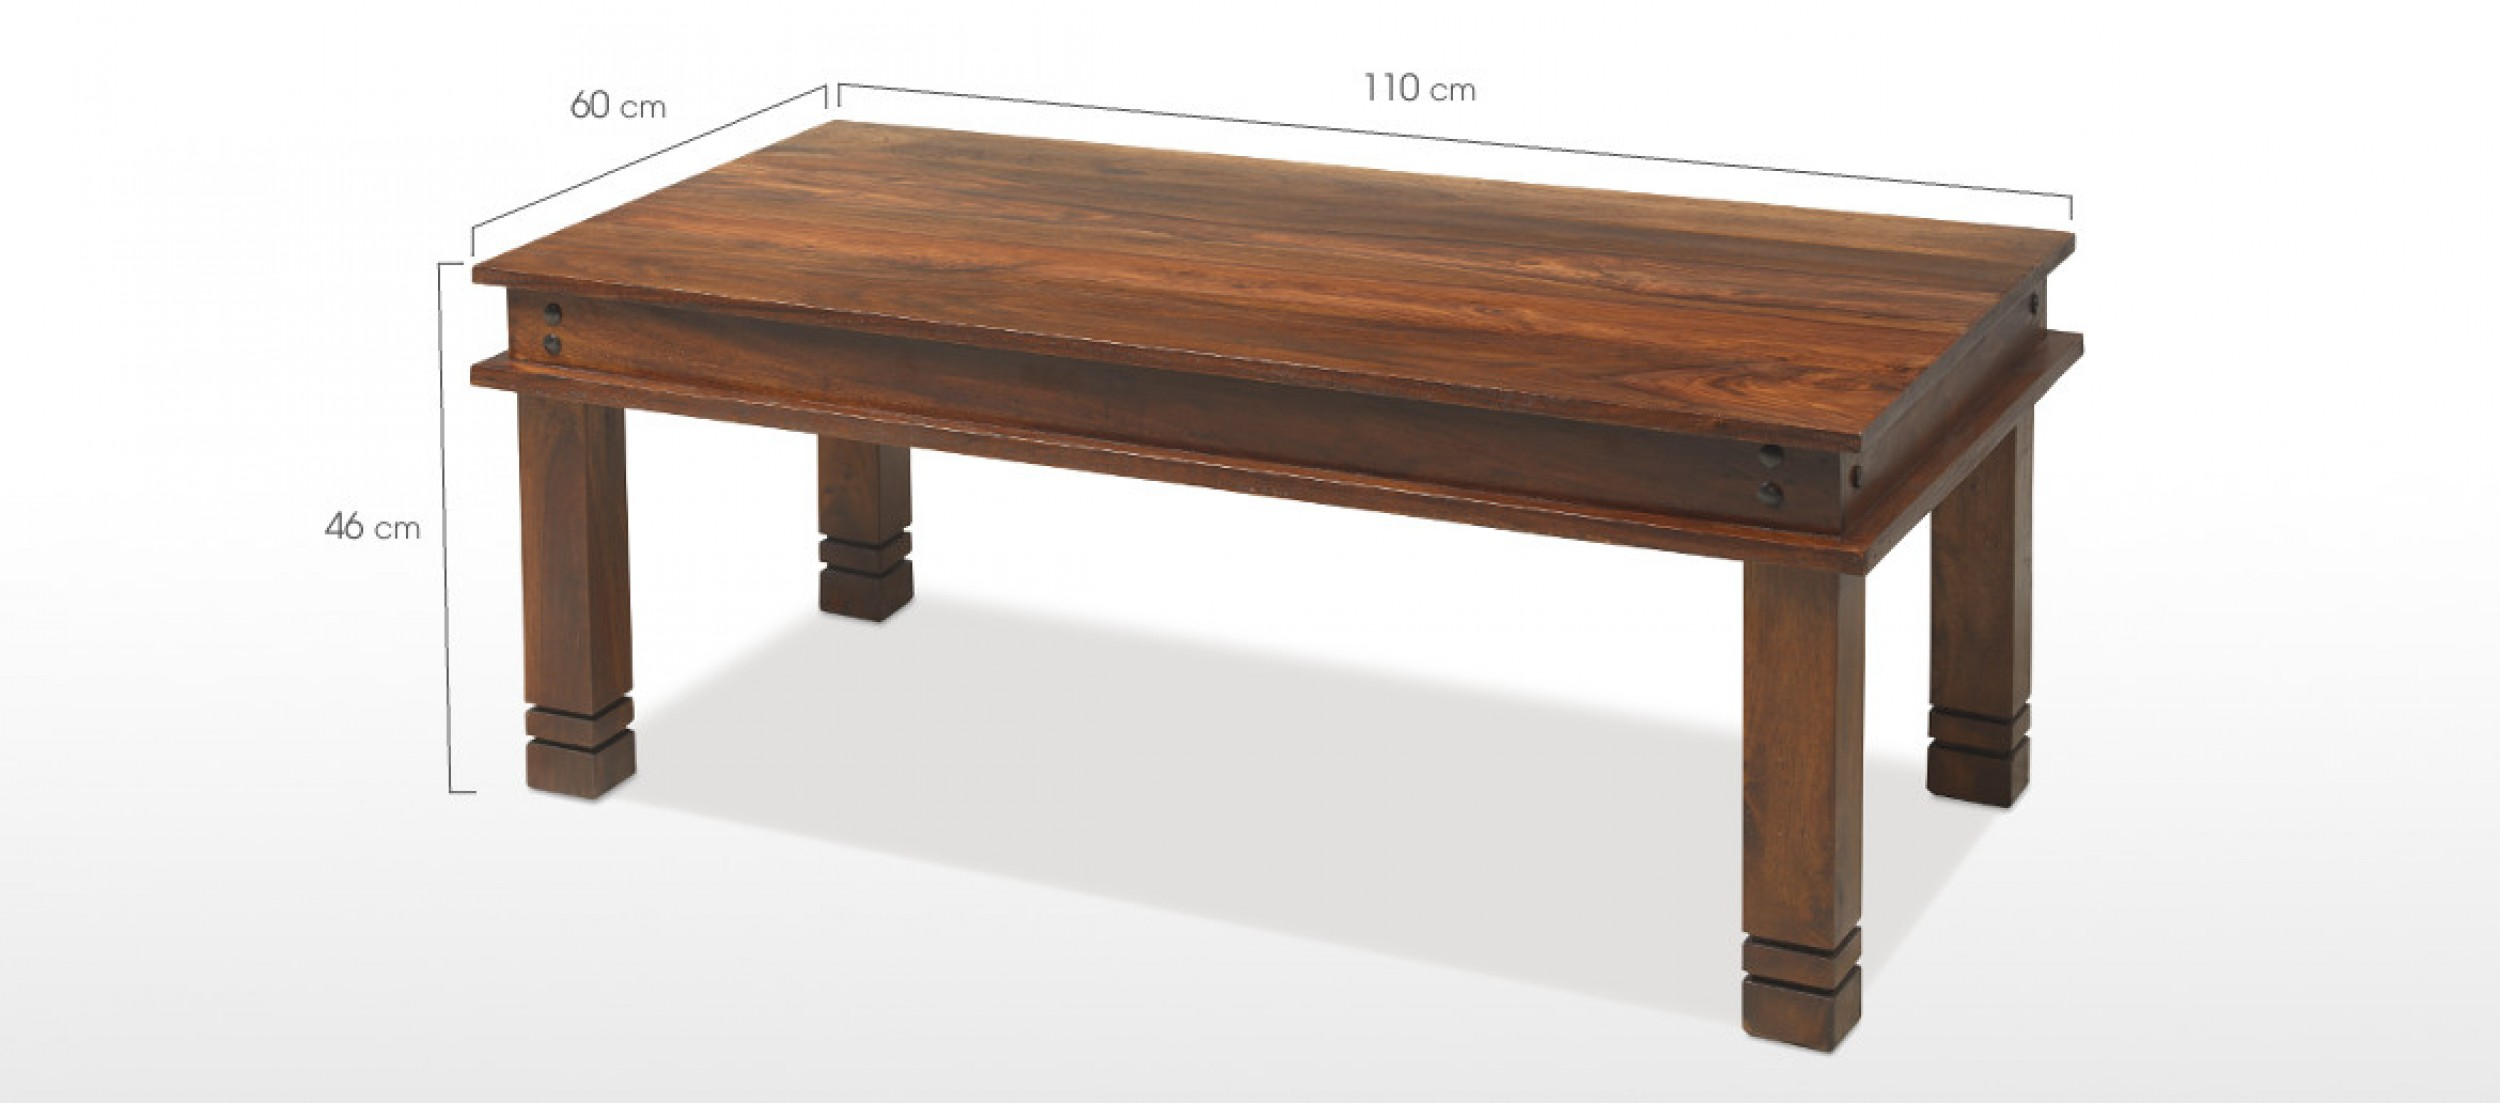 Jali Sheesham 110 Cm Chunky Coffee Table Quercus Living